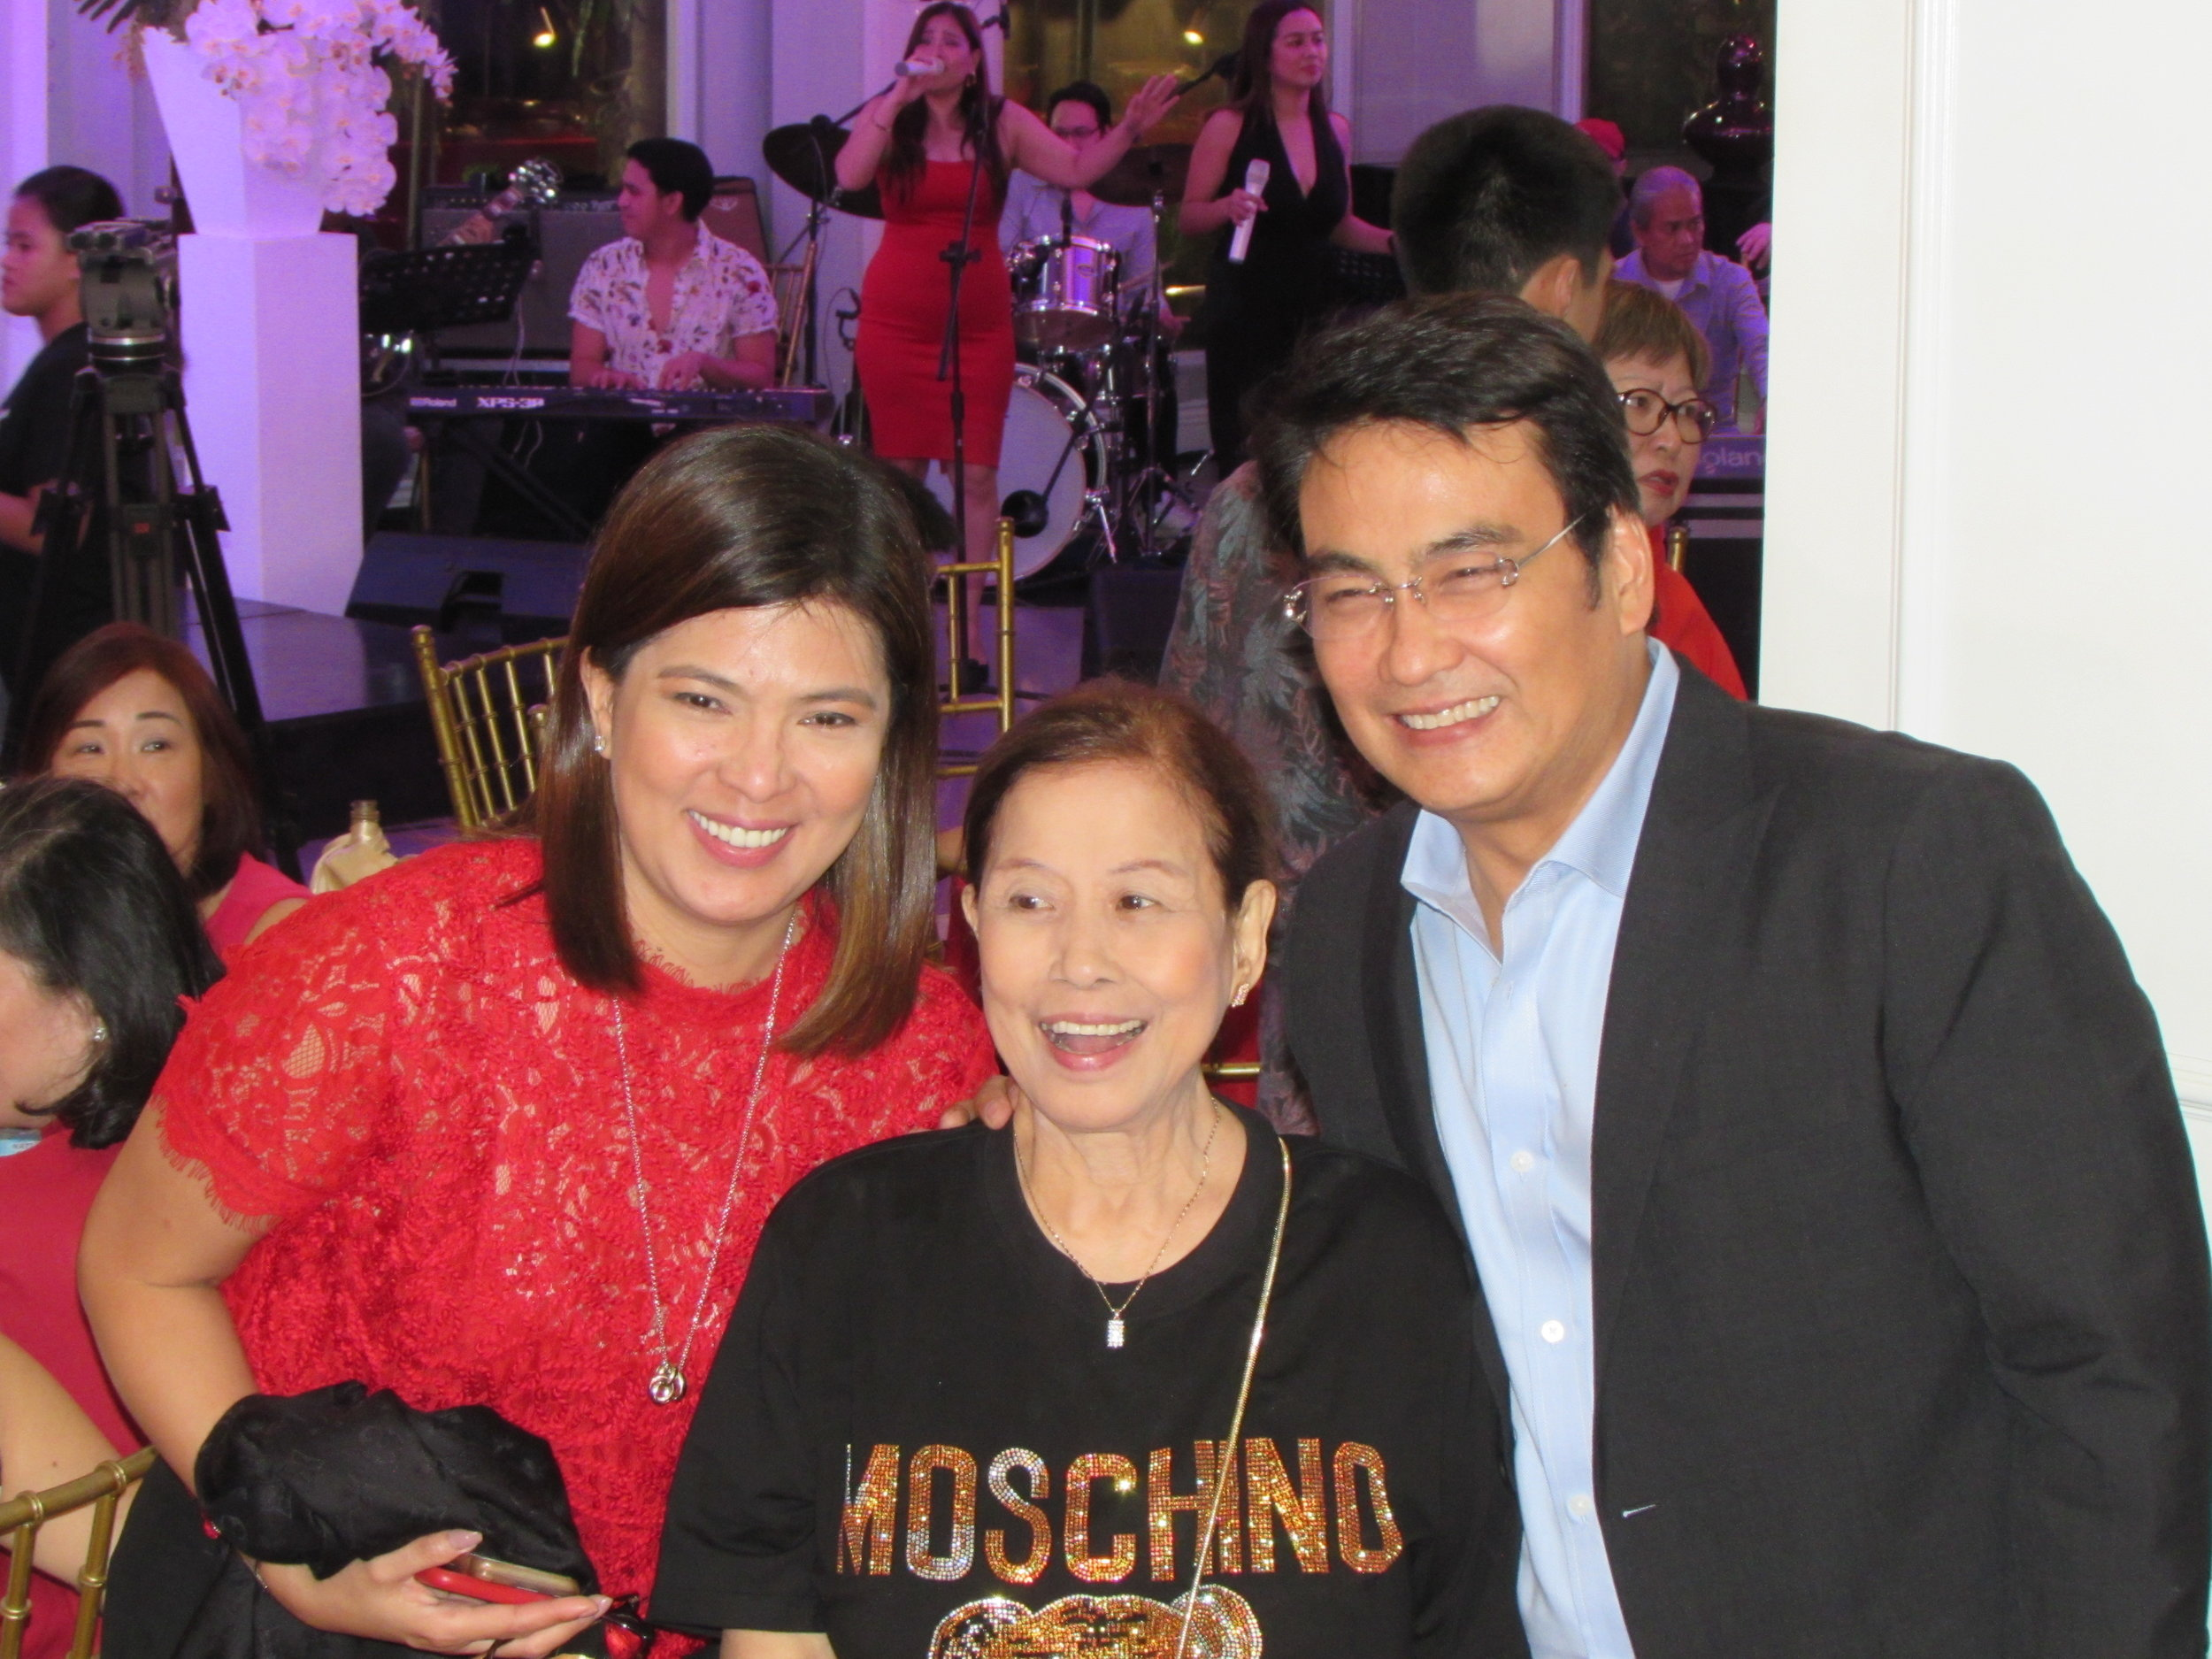 Despite their hectic schedules and the horrible traffic jams, couple Bong and Lani find time to greet Mother on her birthday